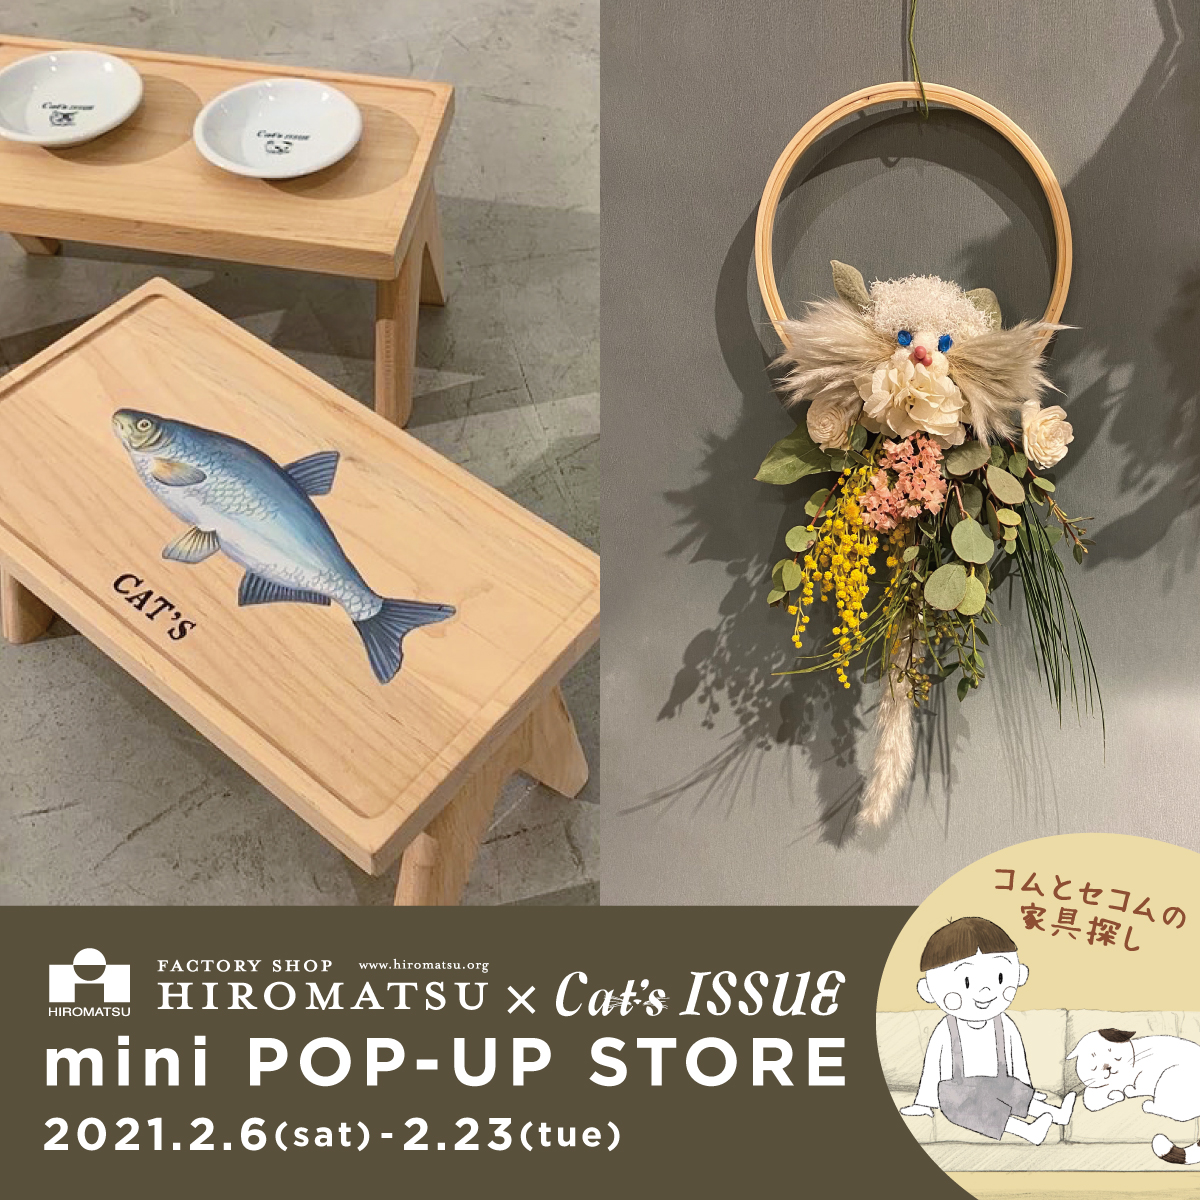 Cat' s ISSUE mini POP-UP STORE